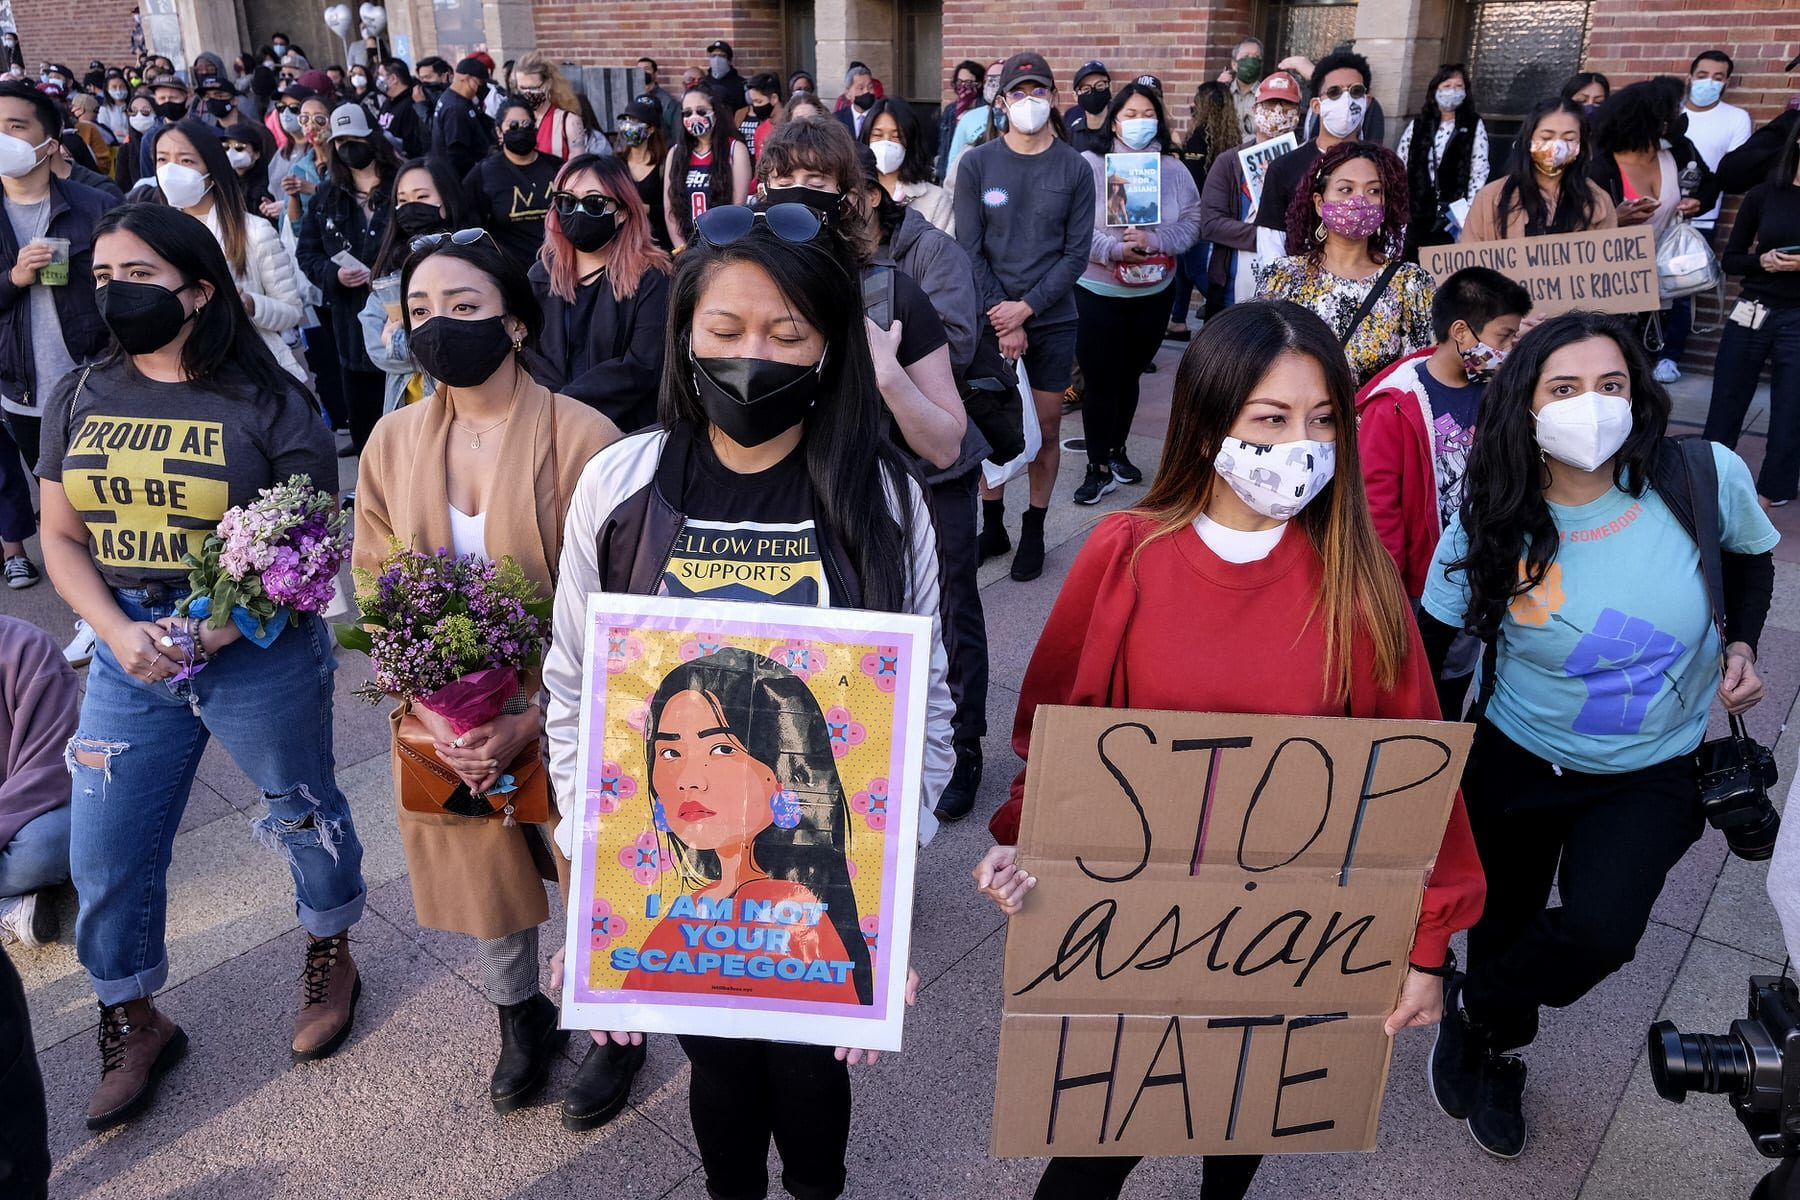 Demonstrators wearing face masks and holding signs take part in a rally